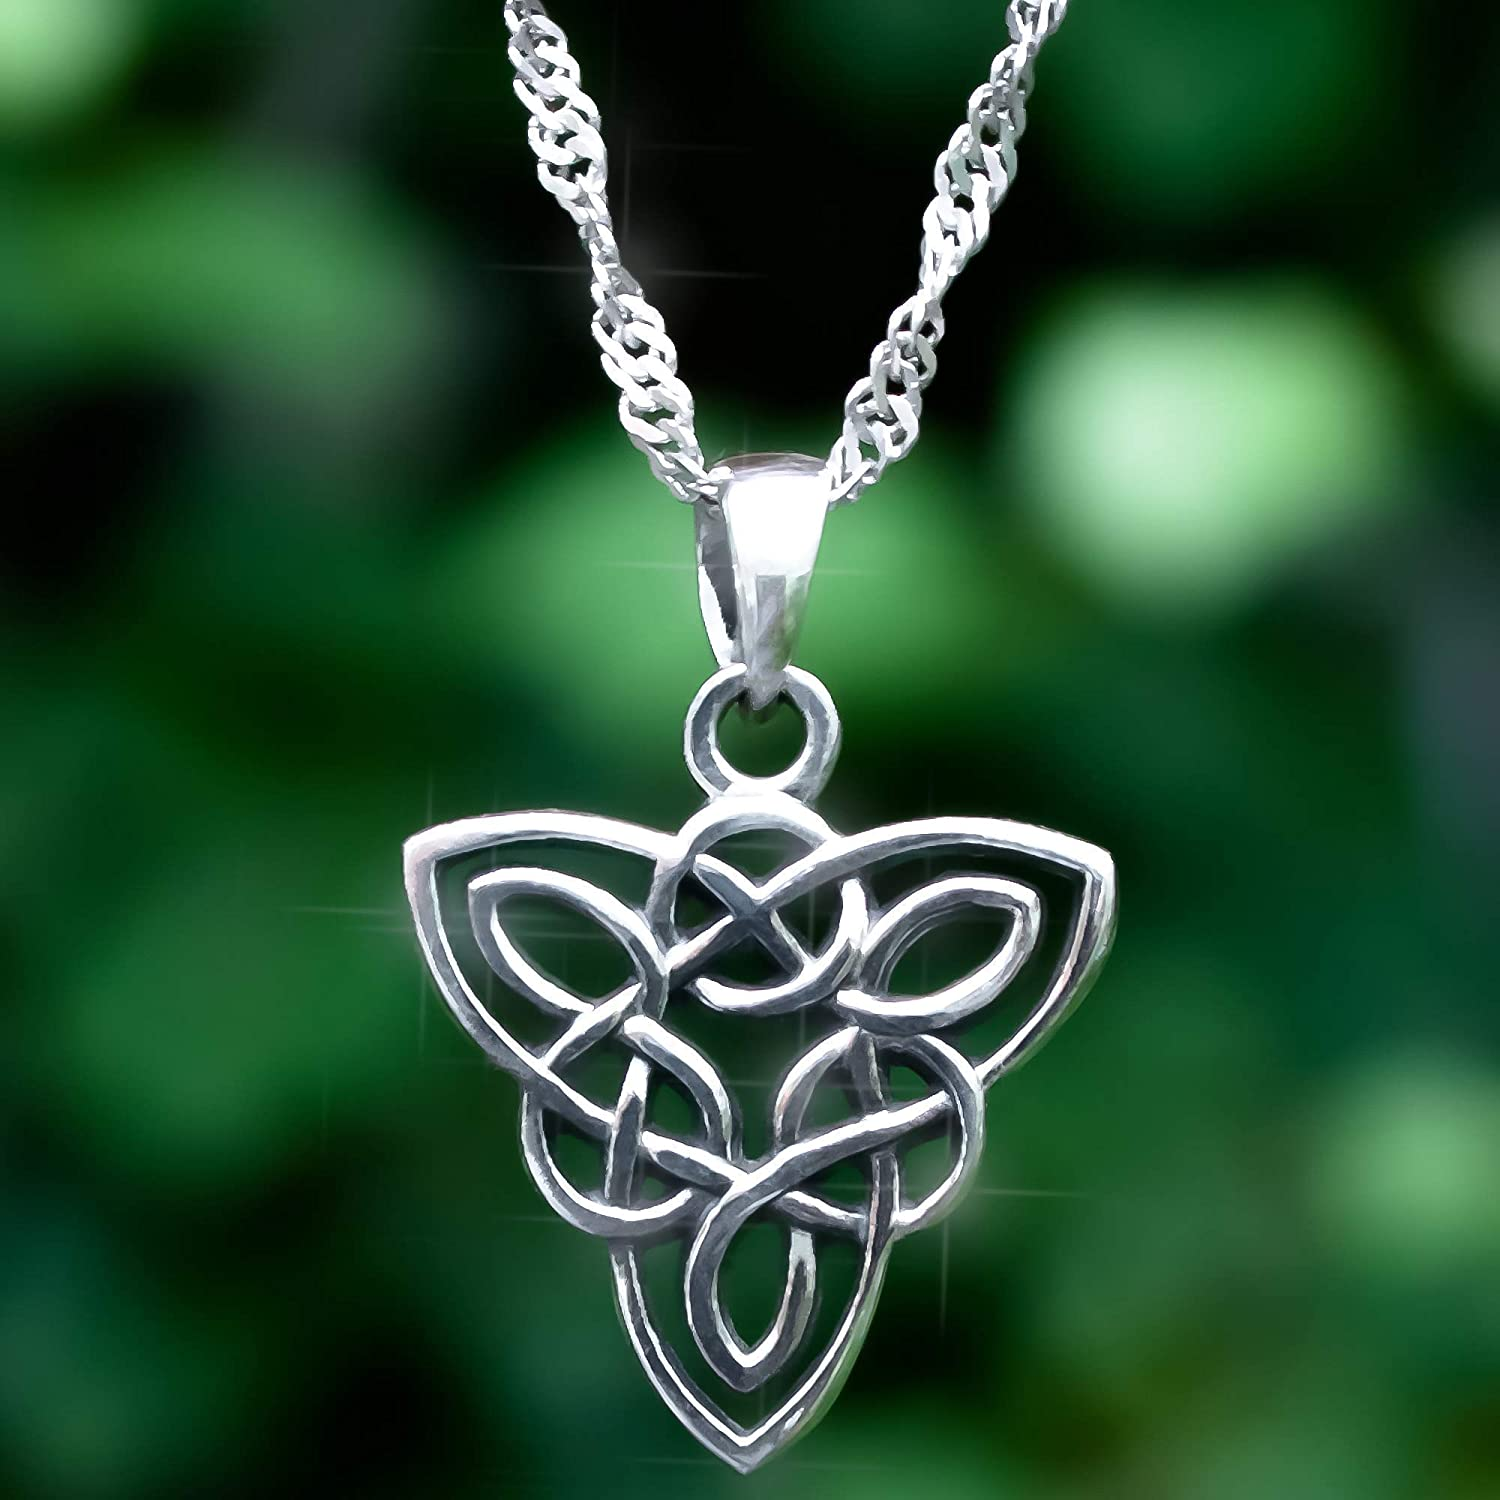 Celtic knot 925 Sterling Silver Triquetra Celtic Knot Pendant with 18 Inch Necklace moonstone black onyx